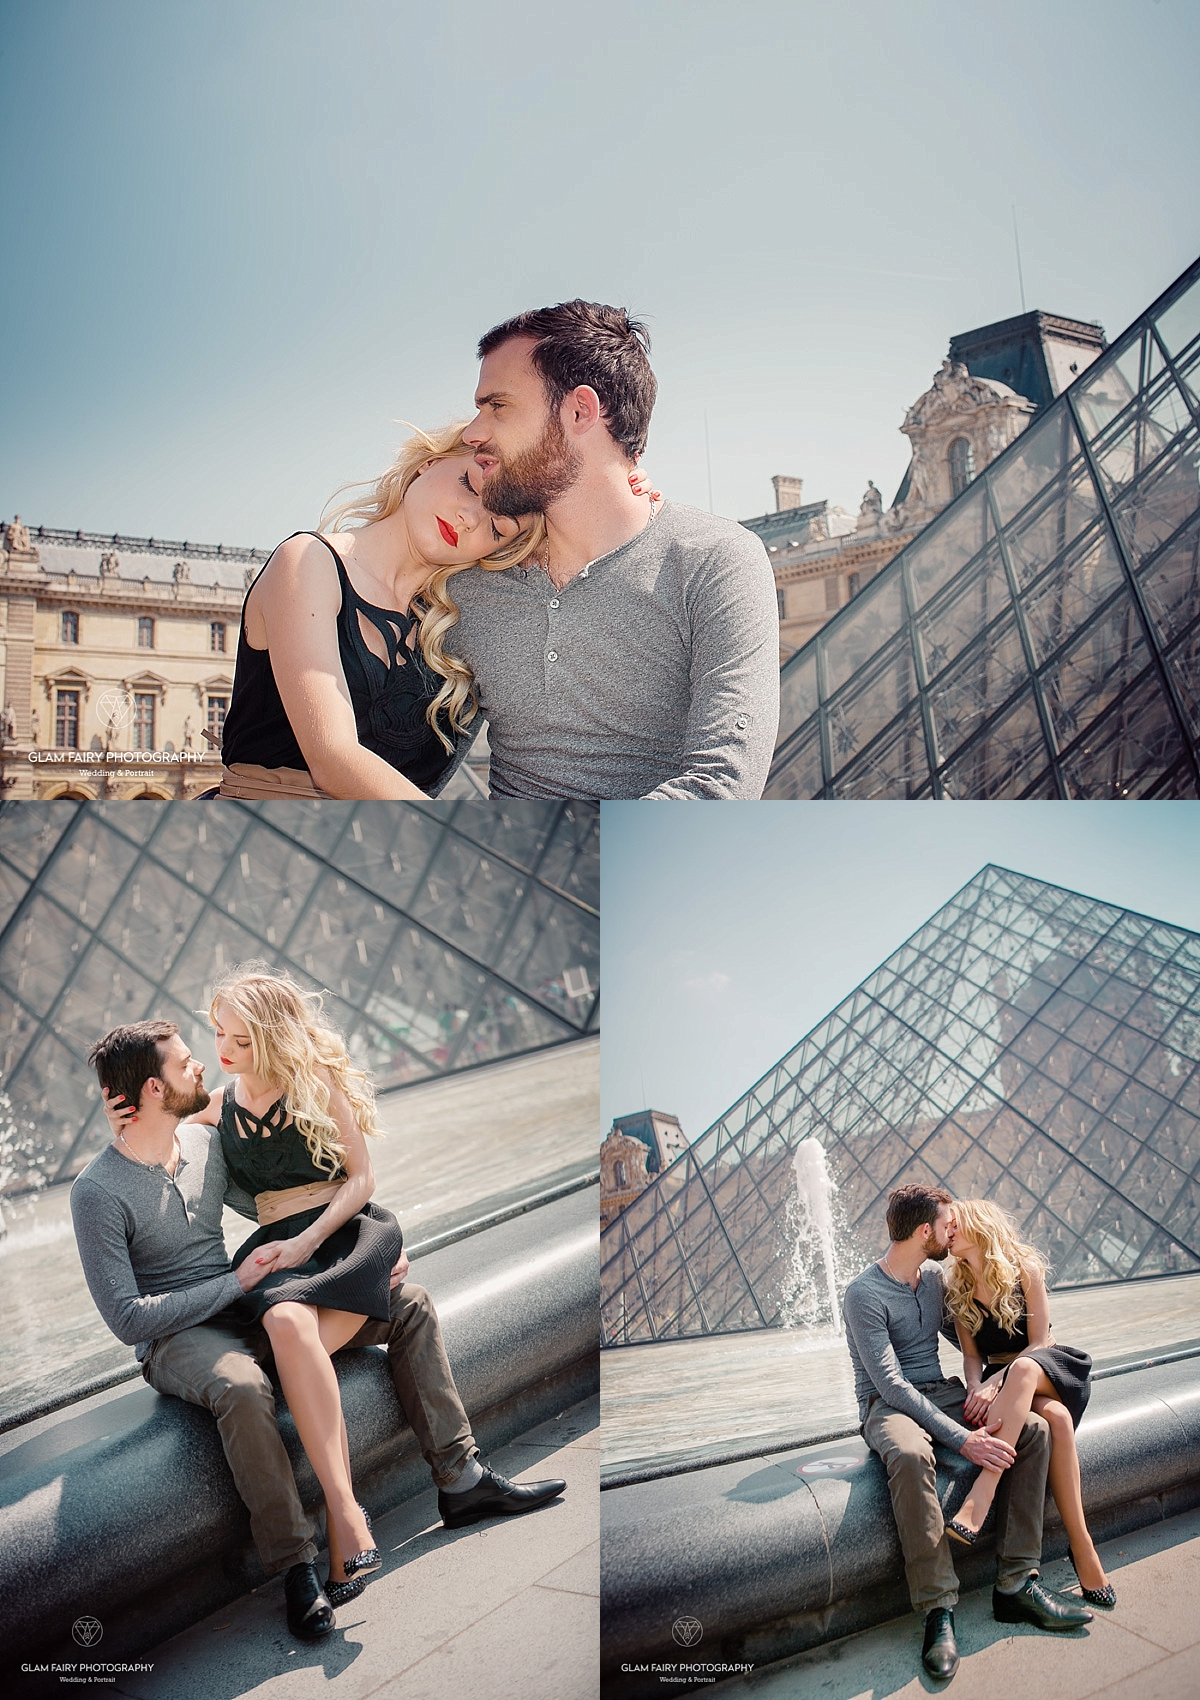 GlamFairyPhotography-seance-couple-louvre-bnf-margaux_0001